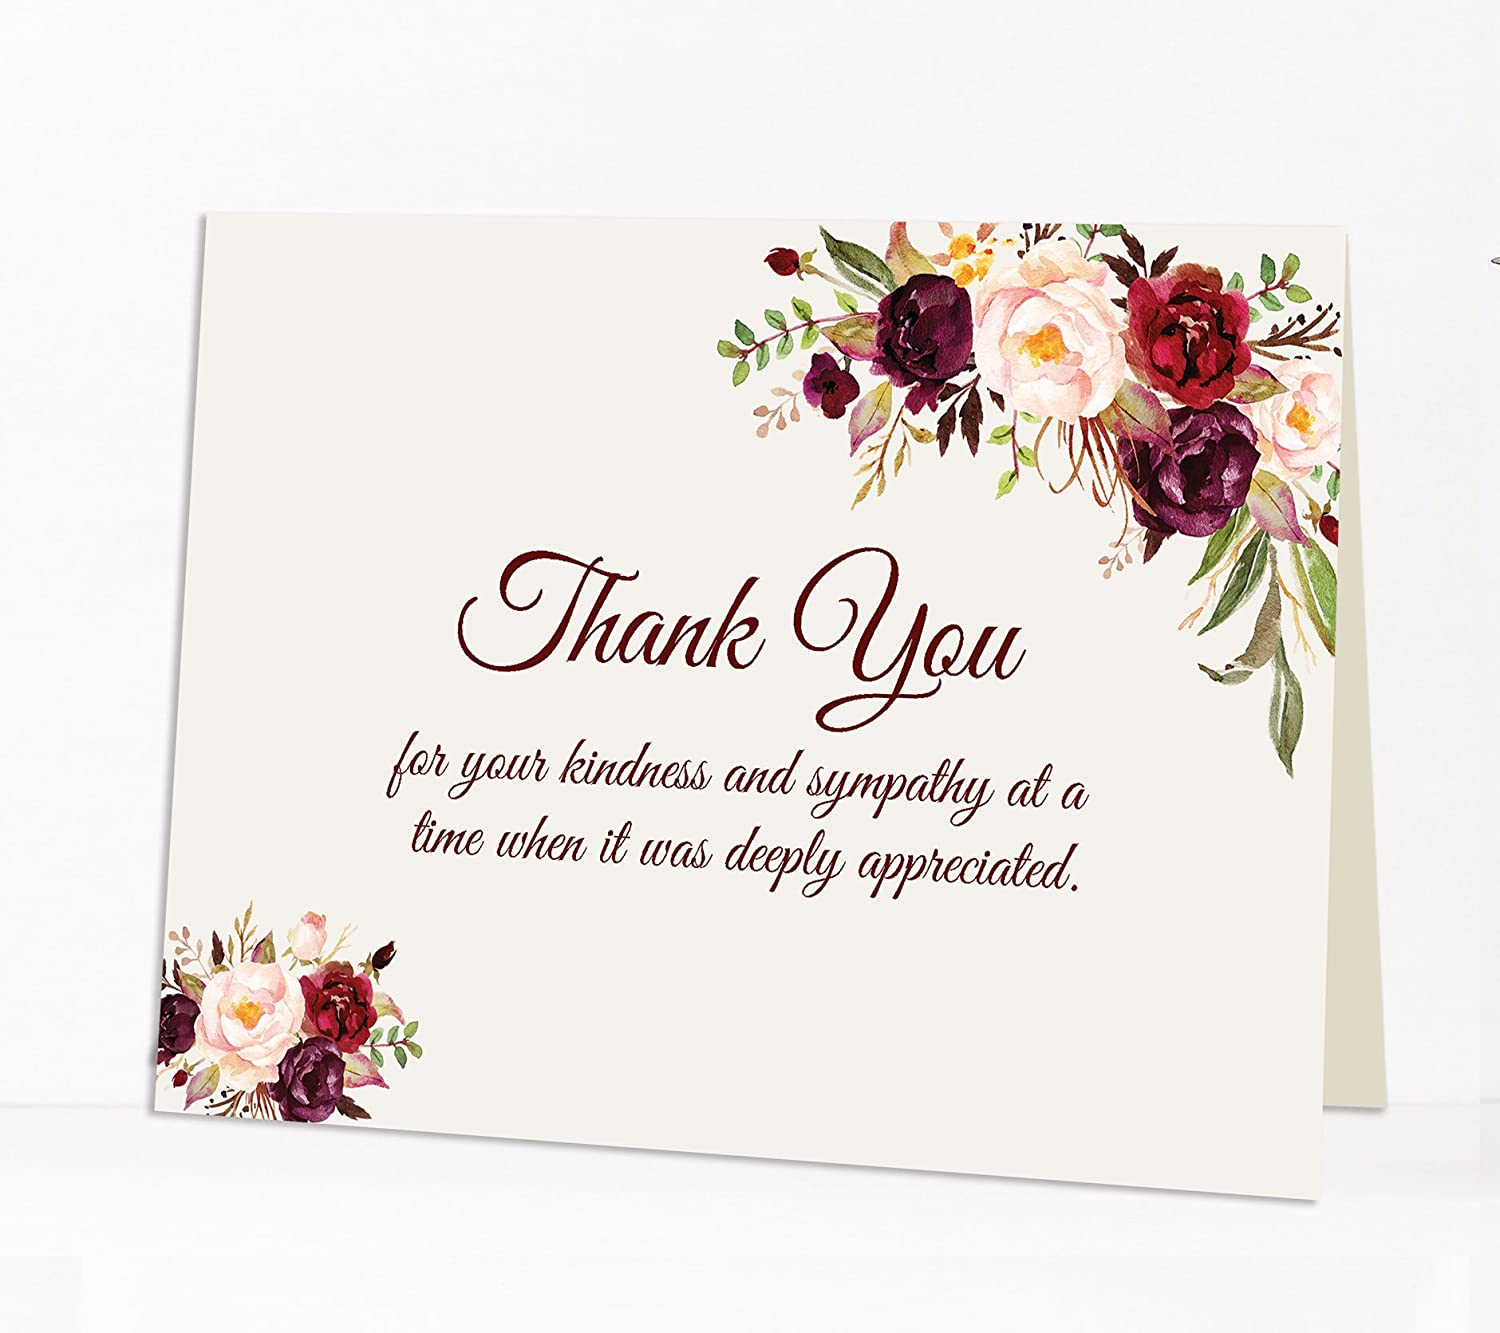 Amazon 15 sympathy acknowledgement cards includes envelopes amazon 15 sympathy acknowledgement cards includes envelopes office products izmirmasajfo